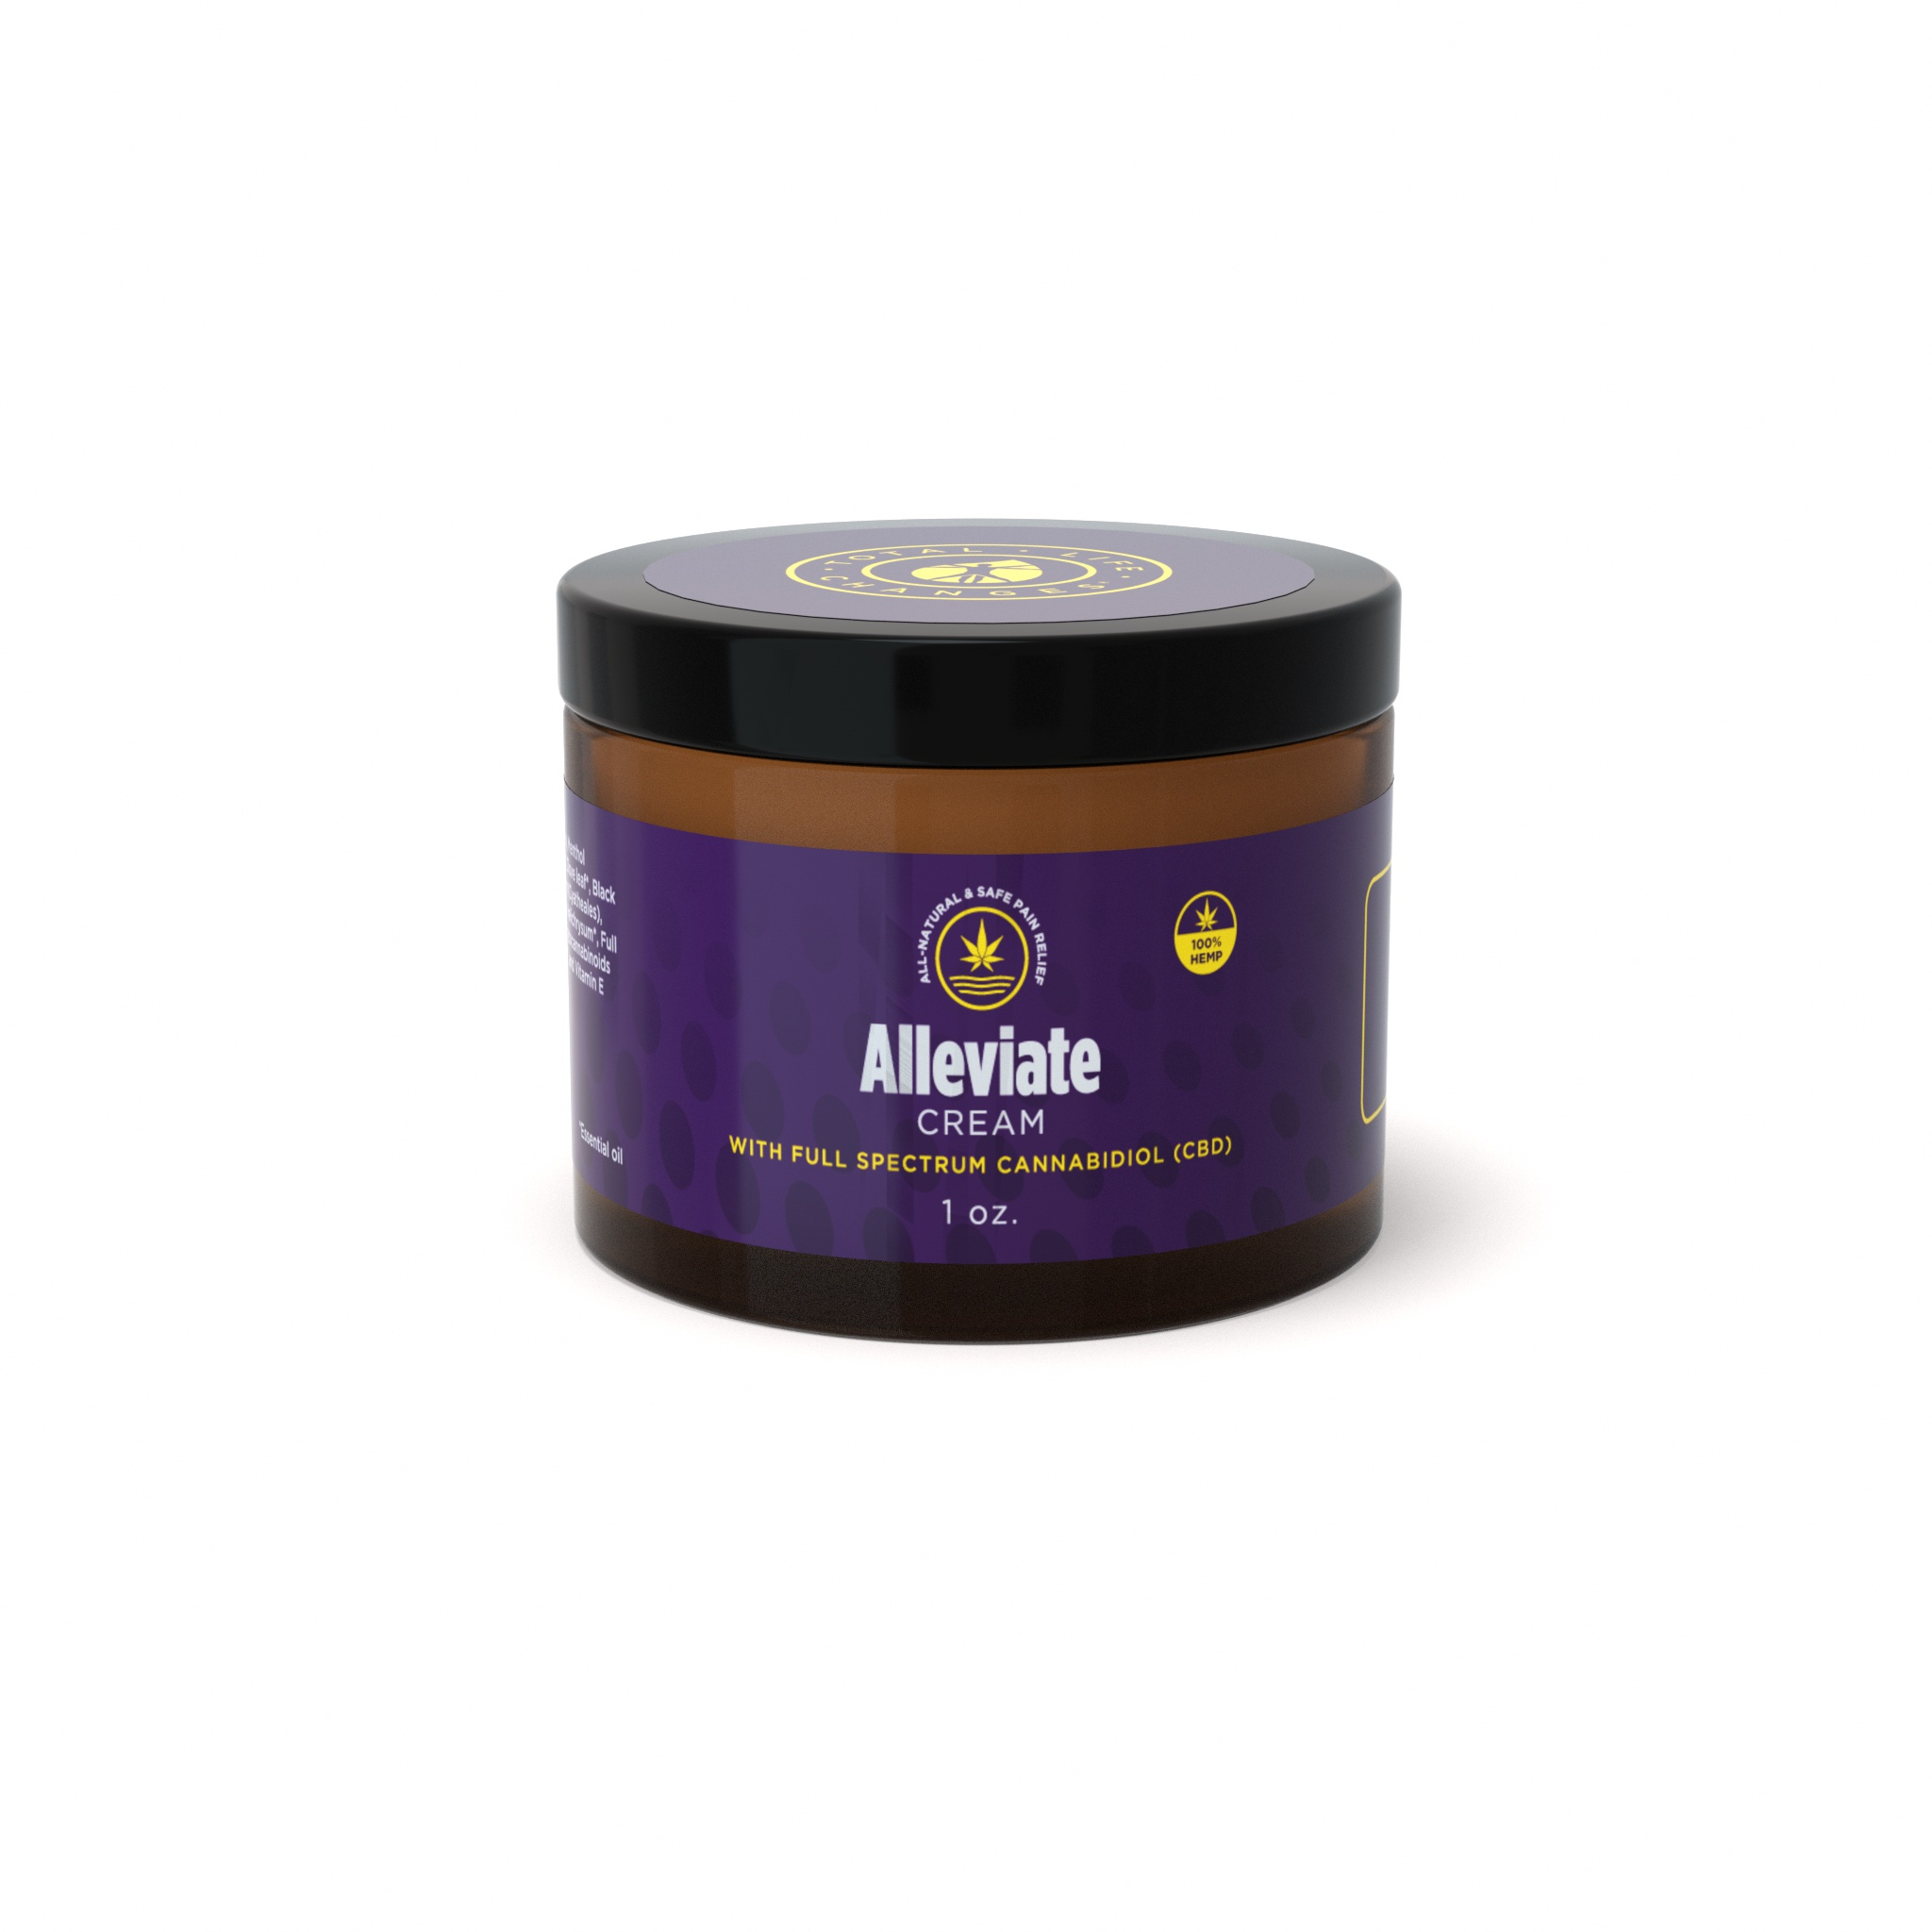 Alleviate Cream - $59.95 USD